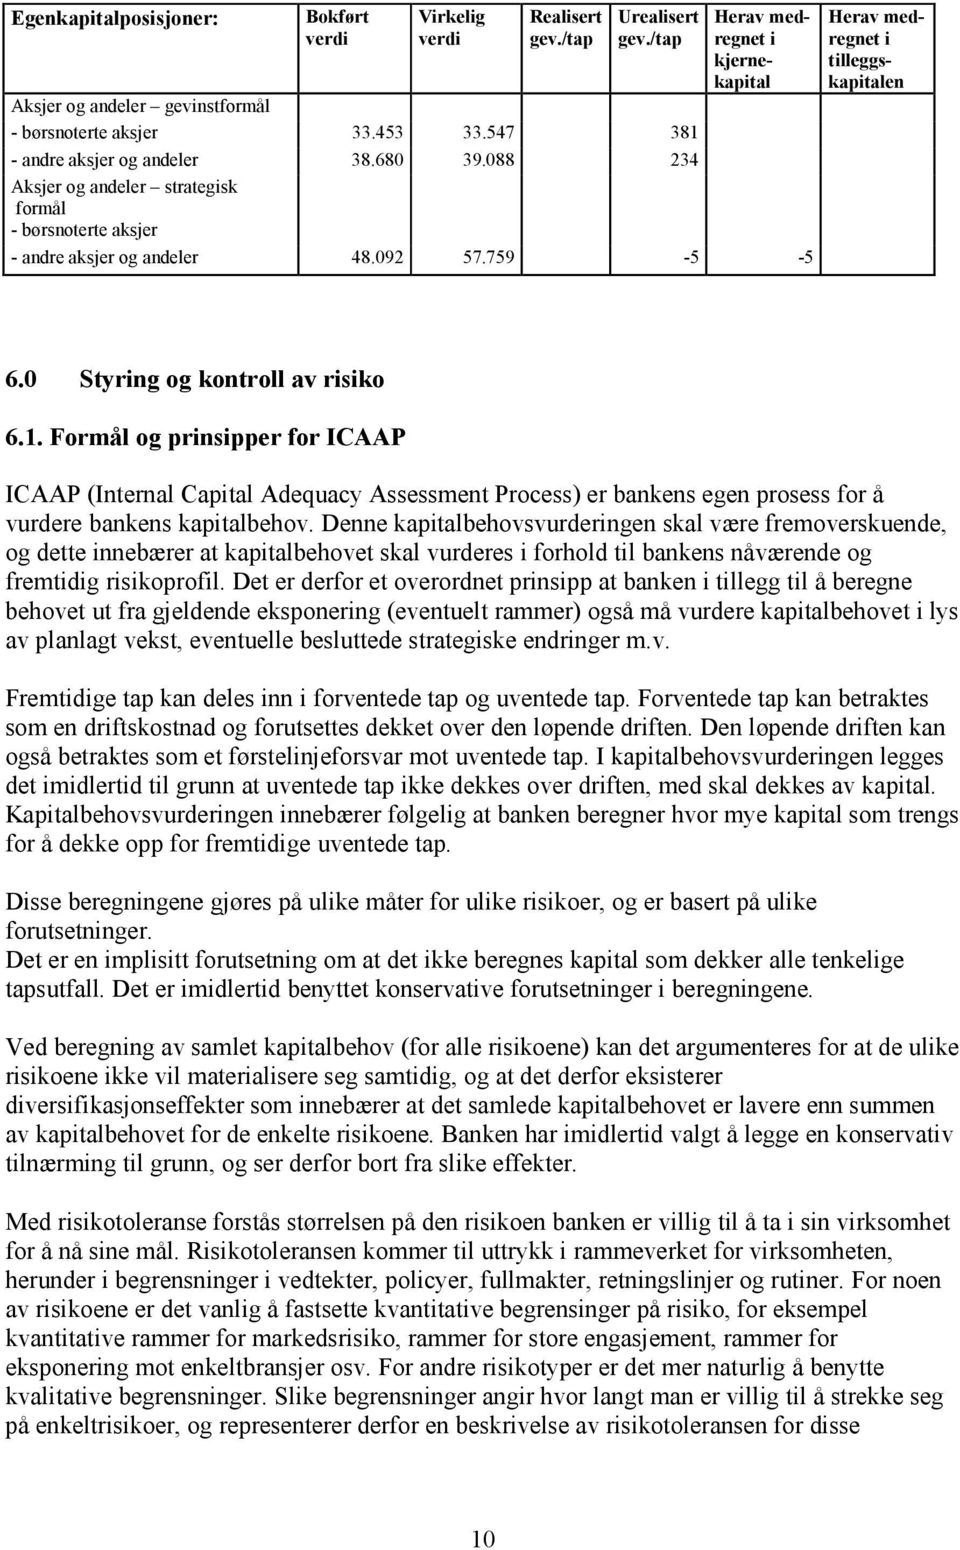 0 Styring og kontroll av risiko 6.1. Formål og prinsipper for ICAAP ICAAP (Internal Capital Adequacy Assessment Process) er bankens egen prosess for å vurdere bankens kapitalbehov.